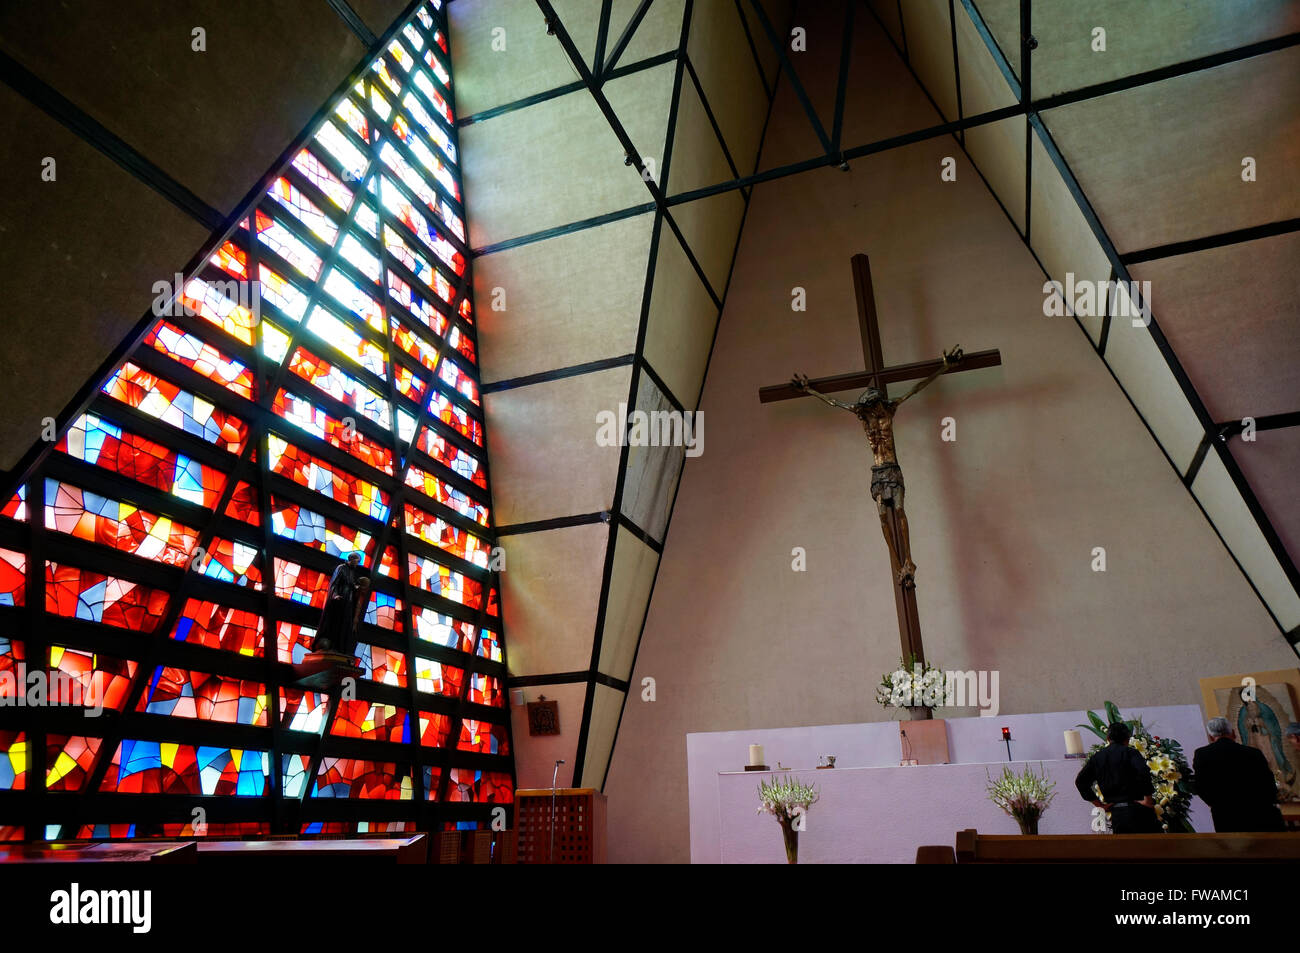 'San Ignacio de Loyola' catholic church in the Polanco neighborhood in Mexico City, Mexico - Stock Image